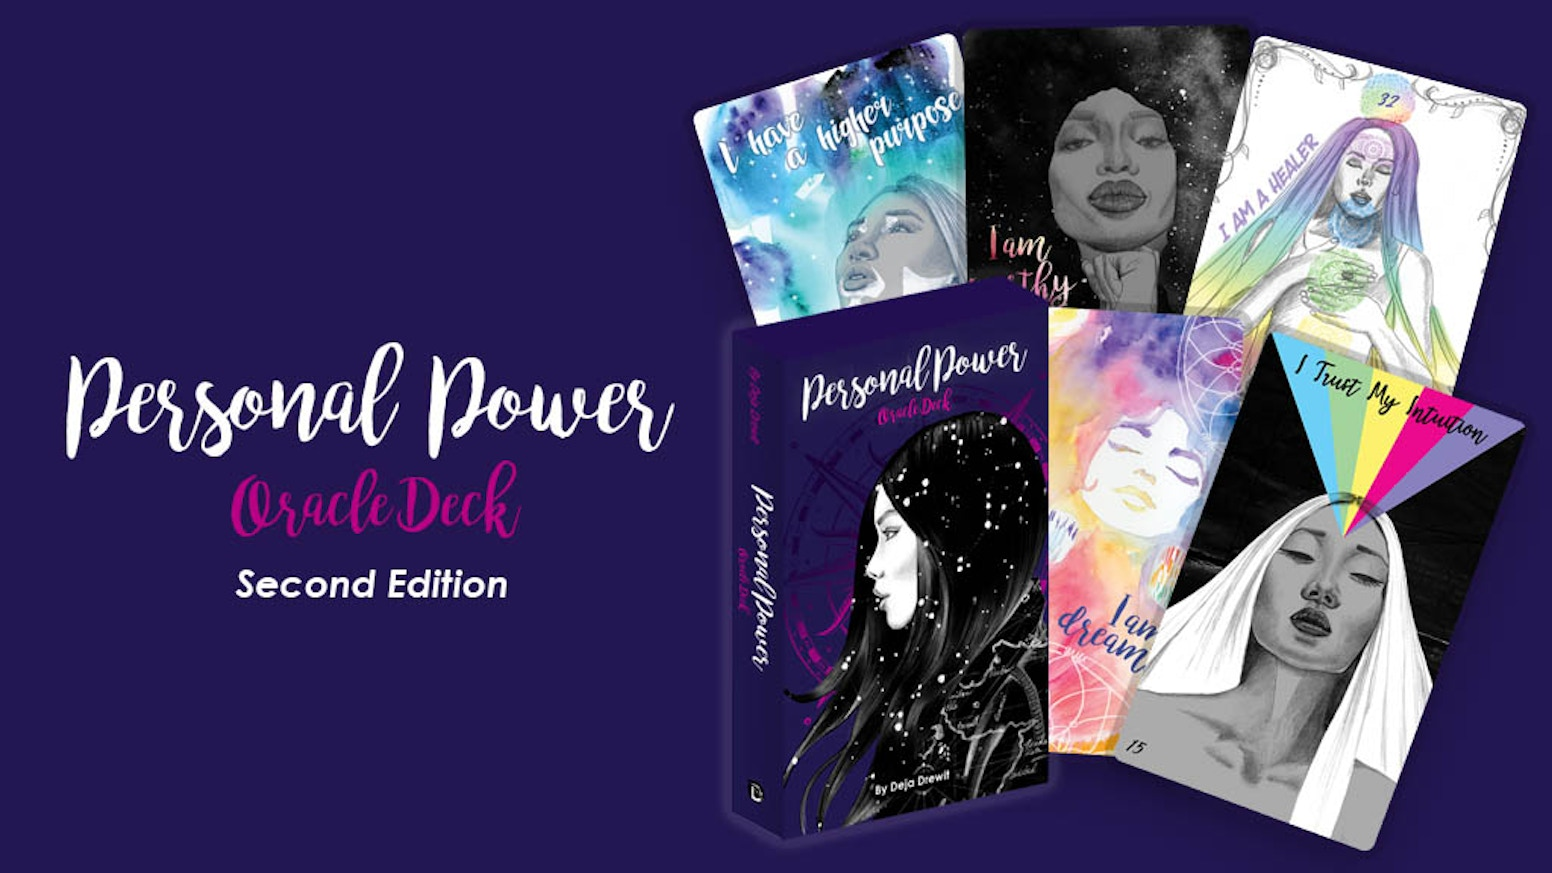 Empowerment cards to help with self-love  and nurture your soul. Discover many personal powers within and strengthen your confidence.